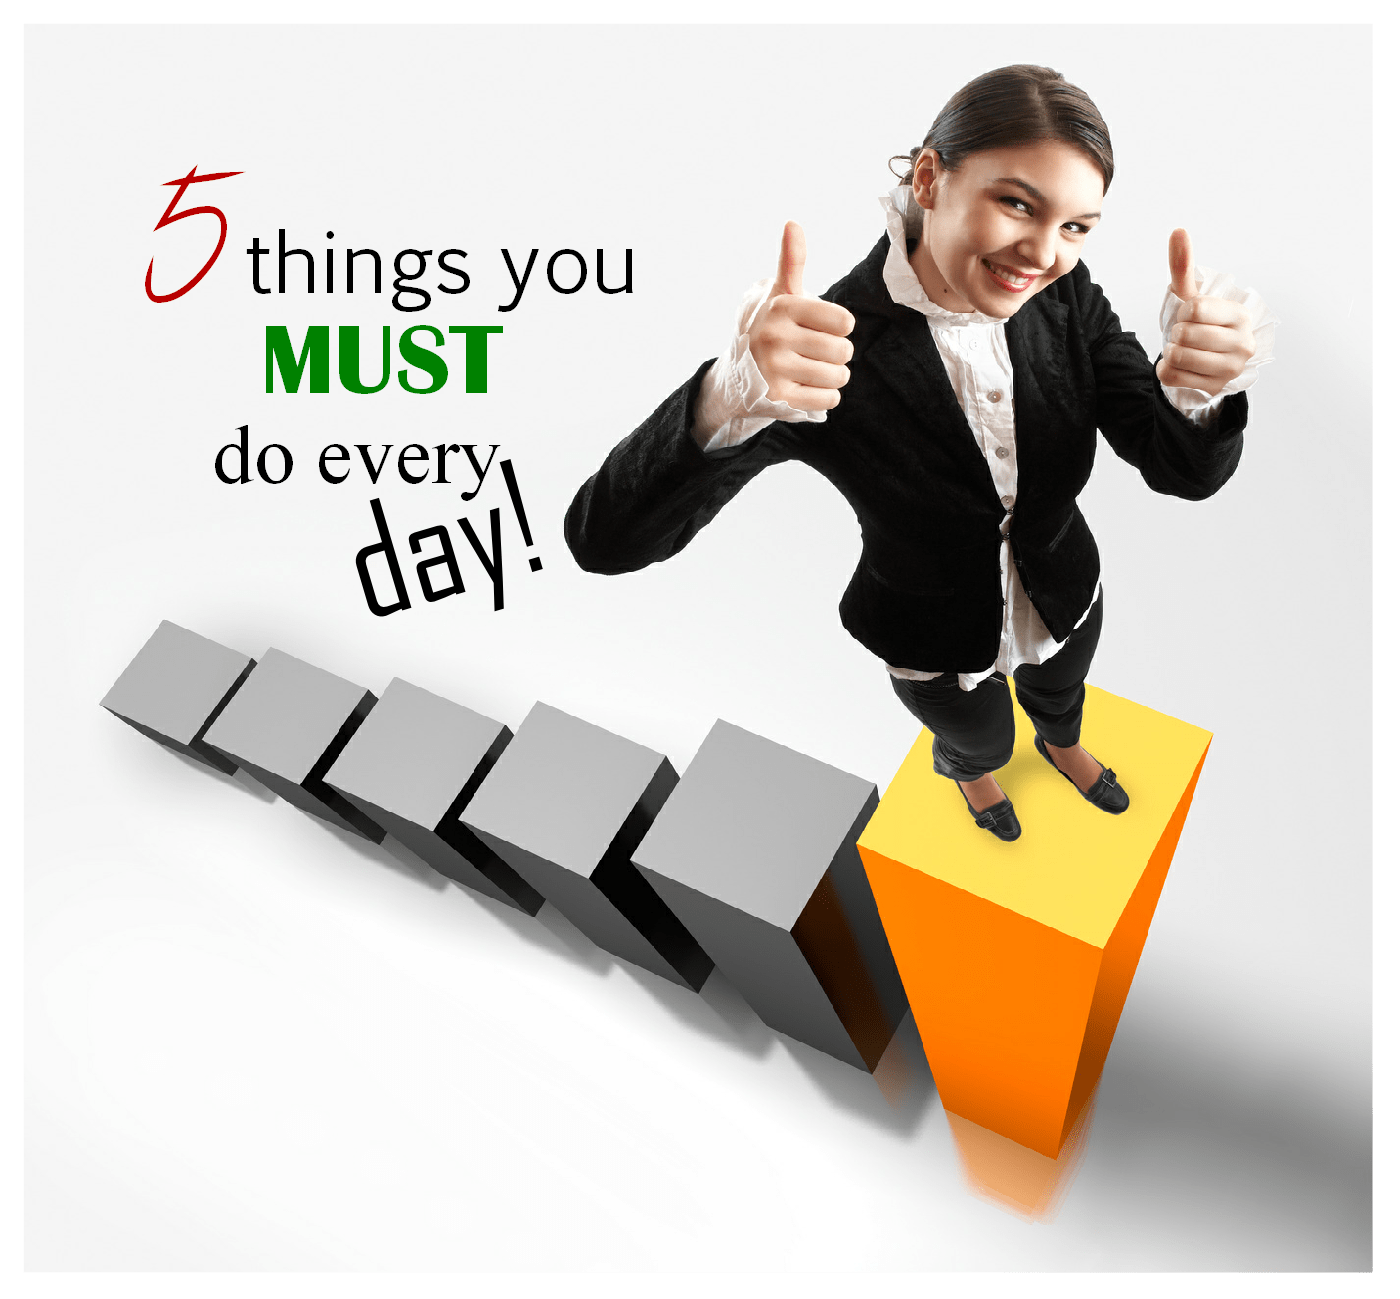 image of 5 things you must be doing every day on Google Plus blog post